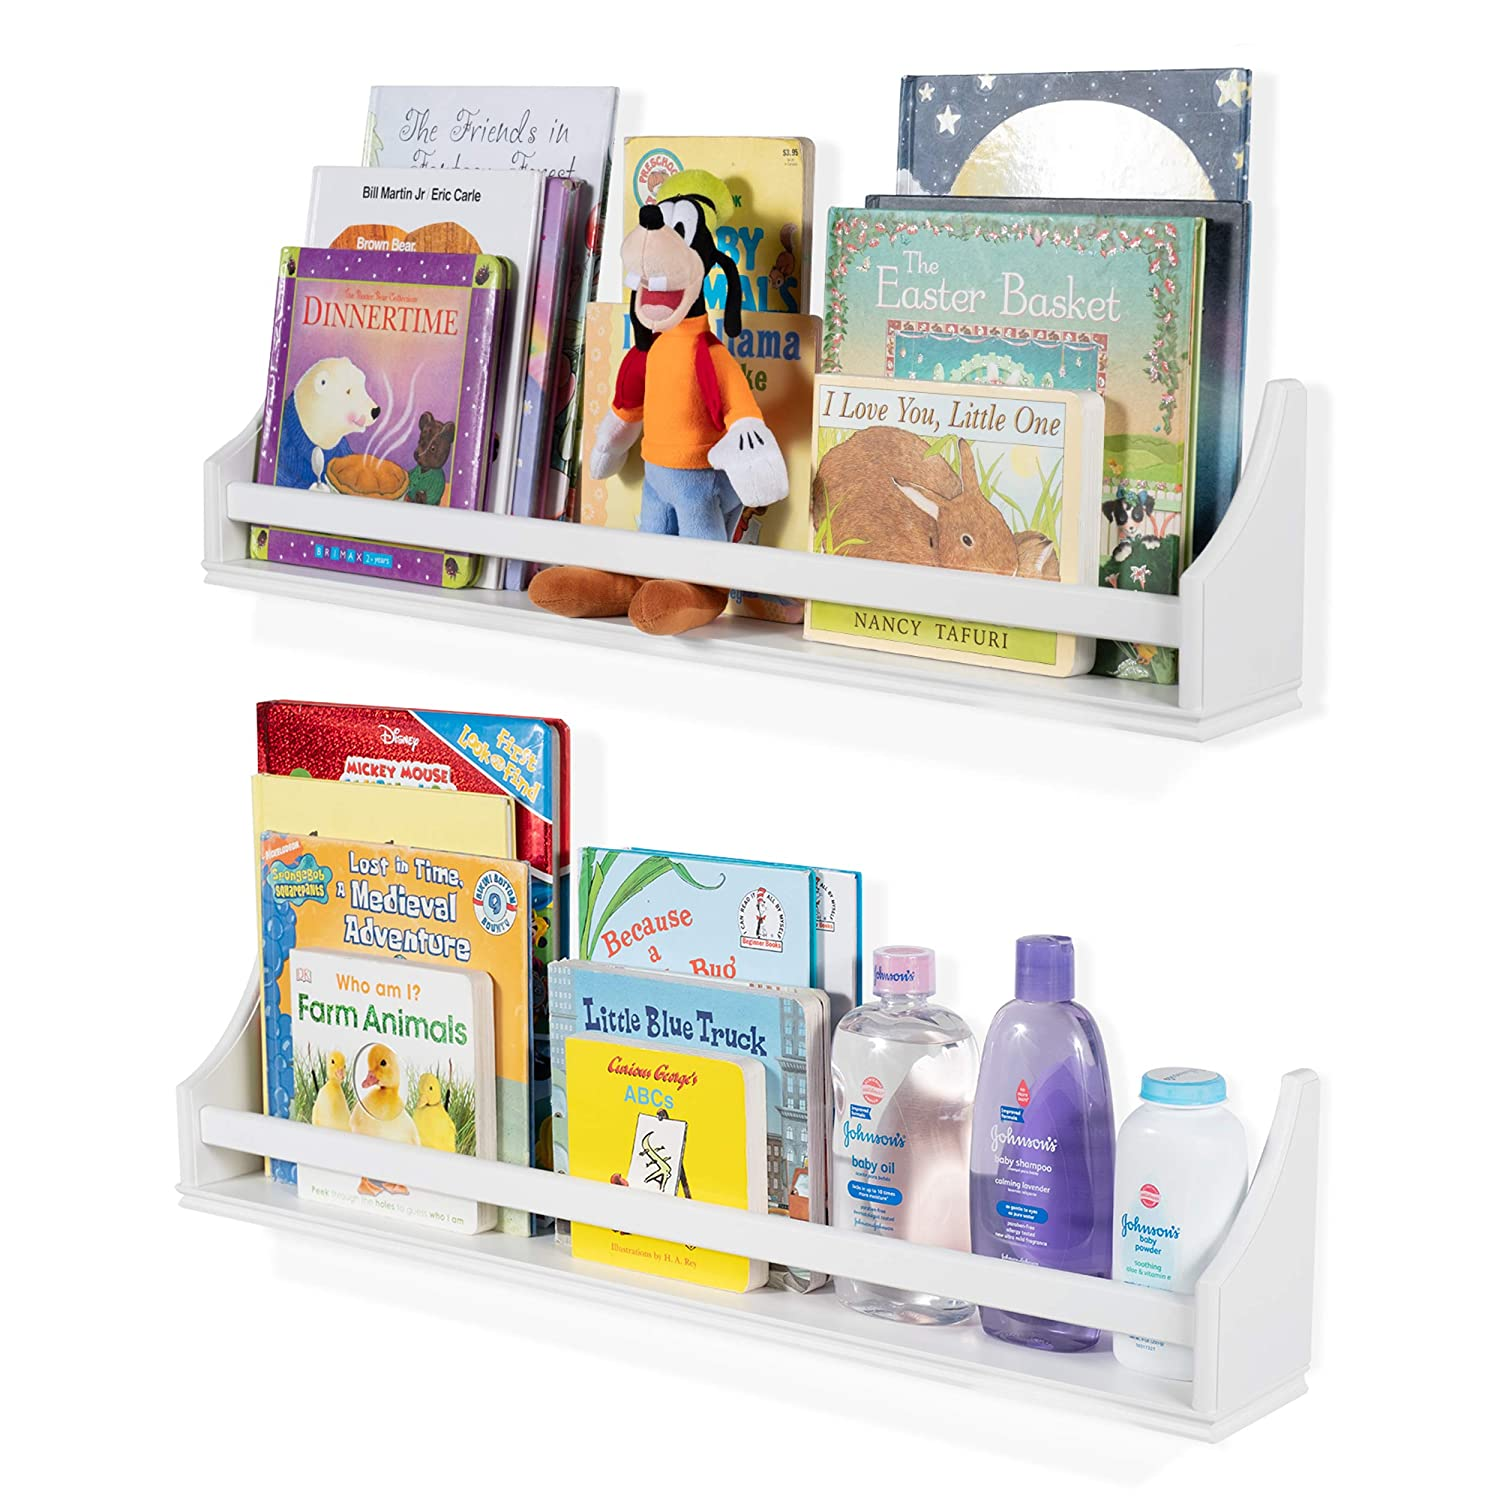 2 Set Shelf Long Crown Molding Floating Bookshelves for Baby and Kids Nursery Room Book Organizer Wall Shelves Storage Ledge Display Holder for Toys CDs Baby Monitor Frames – Ships Fully Assembled 81xwocHnRjL._SL1500_